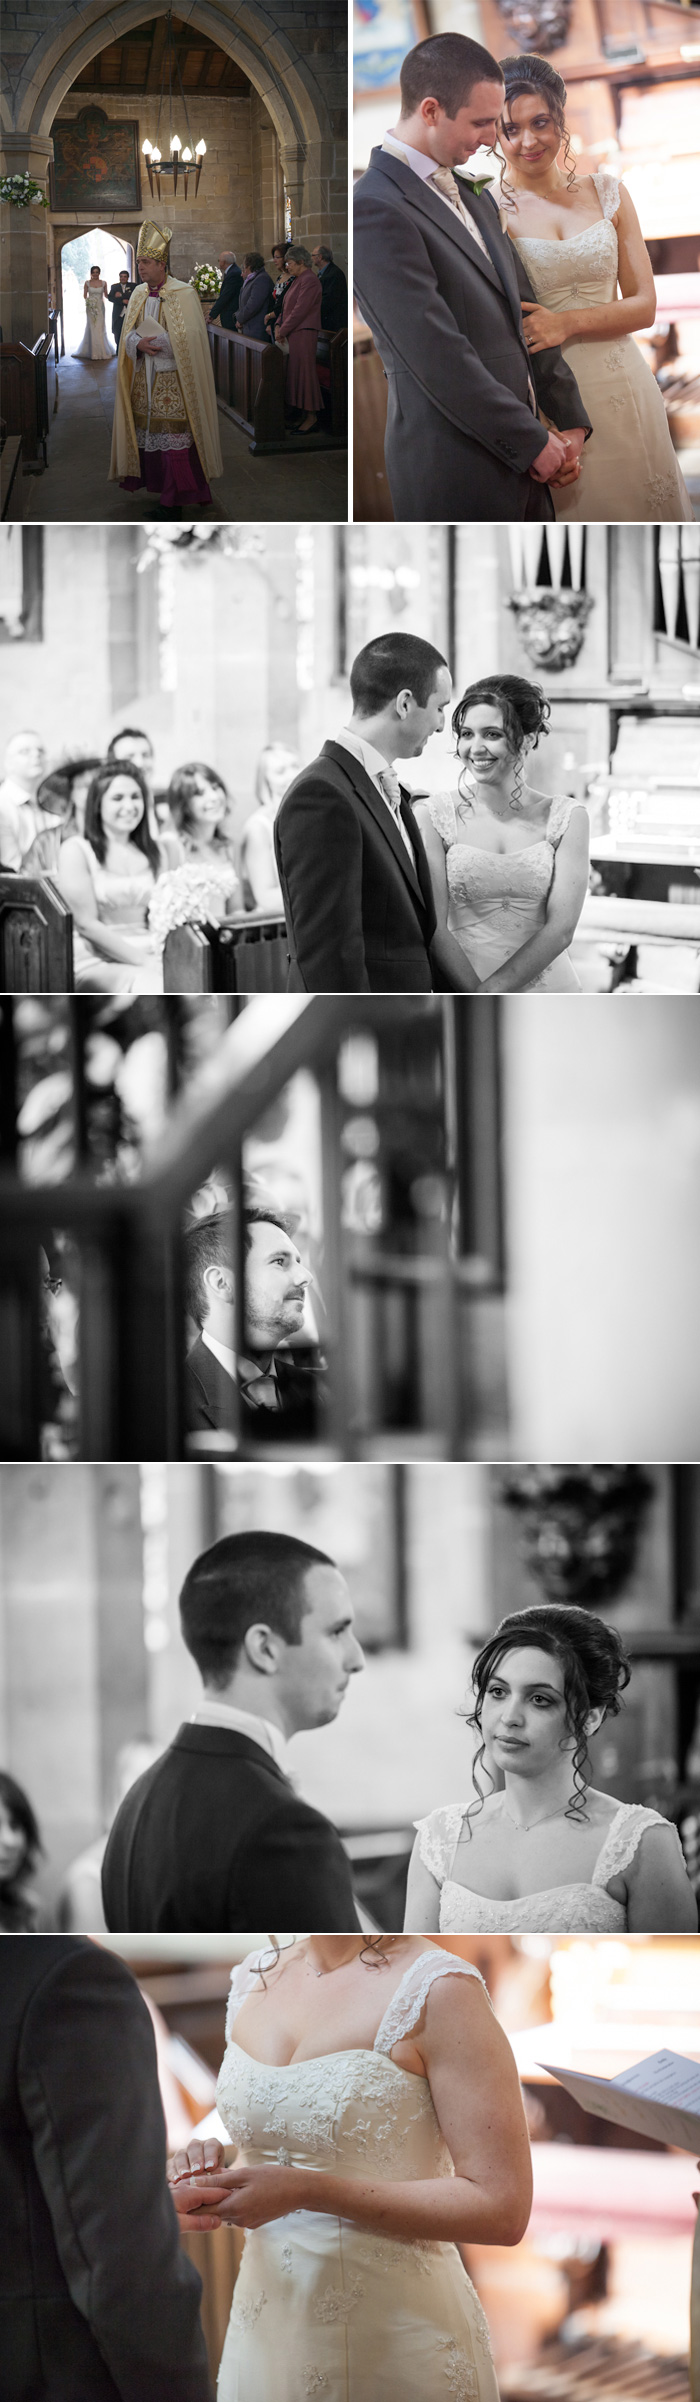 Wragby church wedding photography pictures